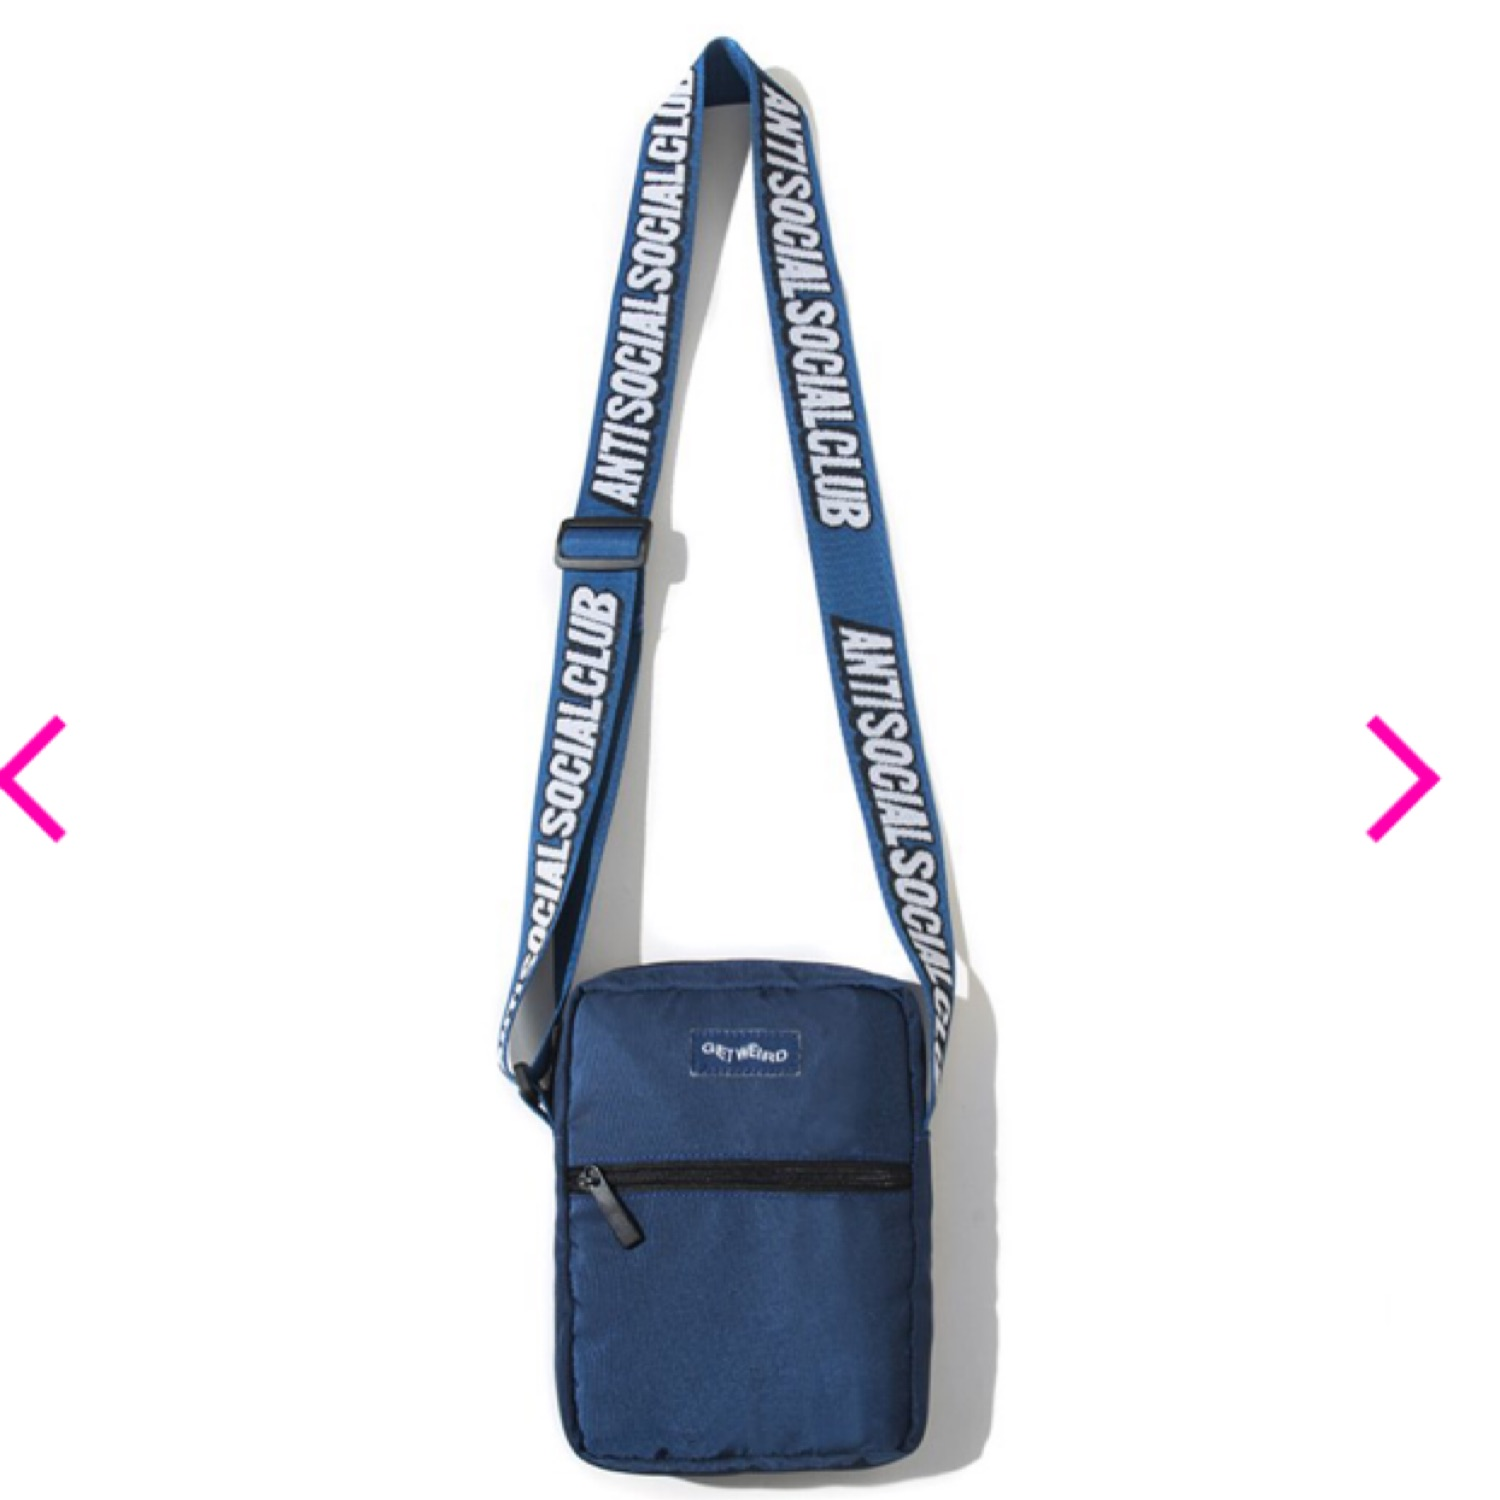 Assc Shoulder Bag